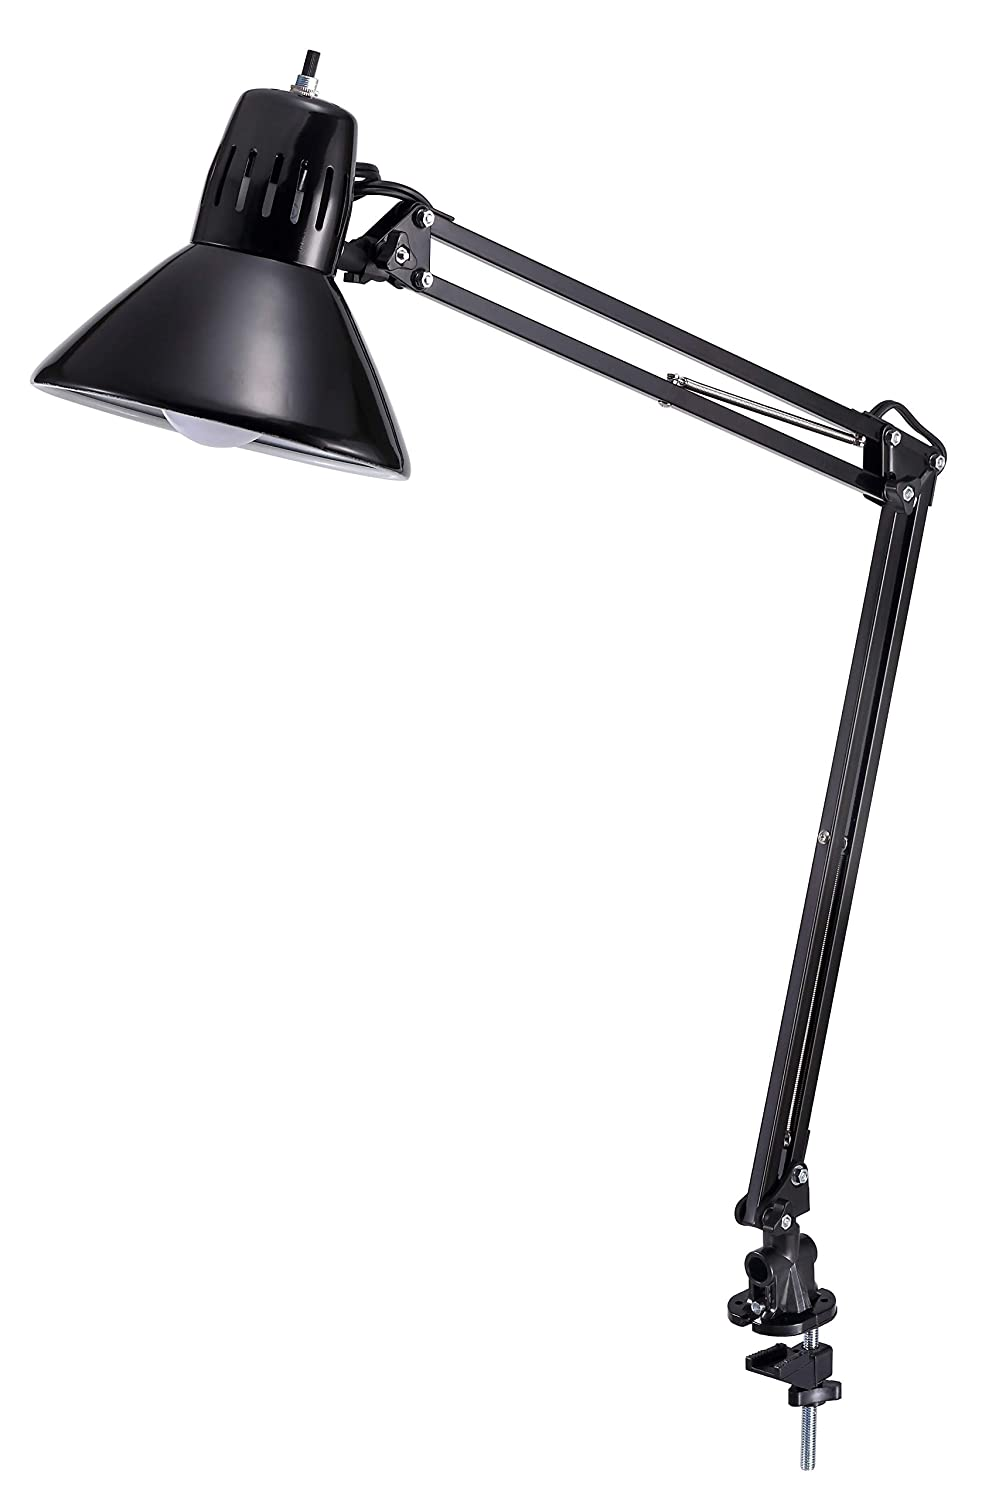 "Bostitch Office LED Swing Arm Desk Lamp with Clamp Mount, 36"" Reach, Includes LED Bulb"